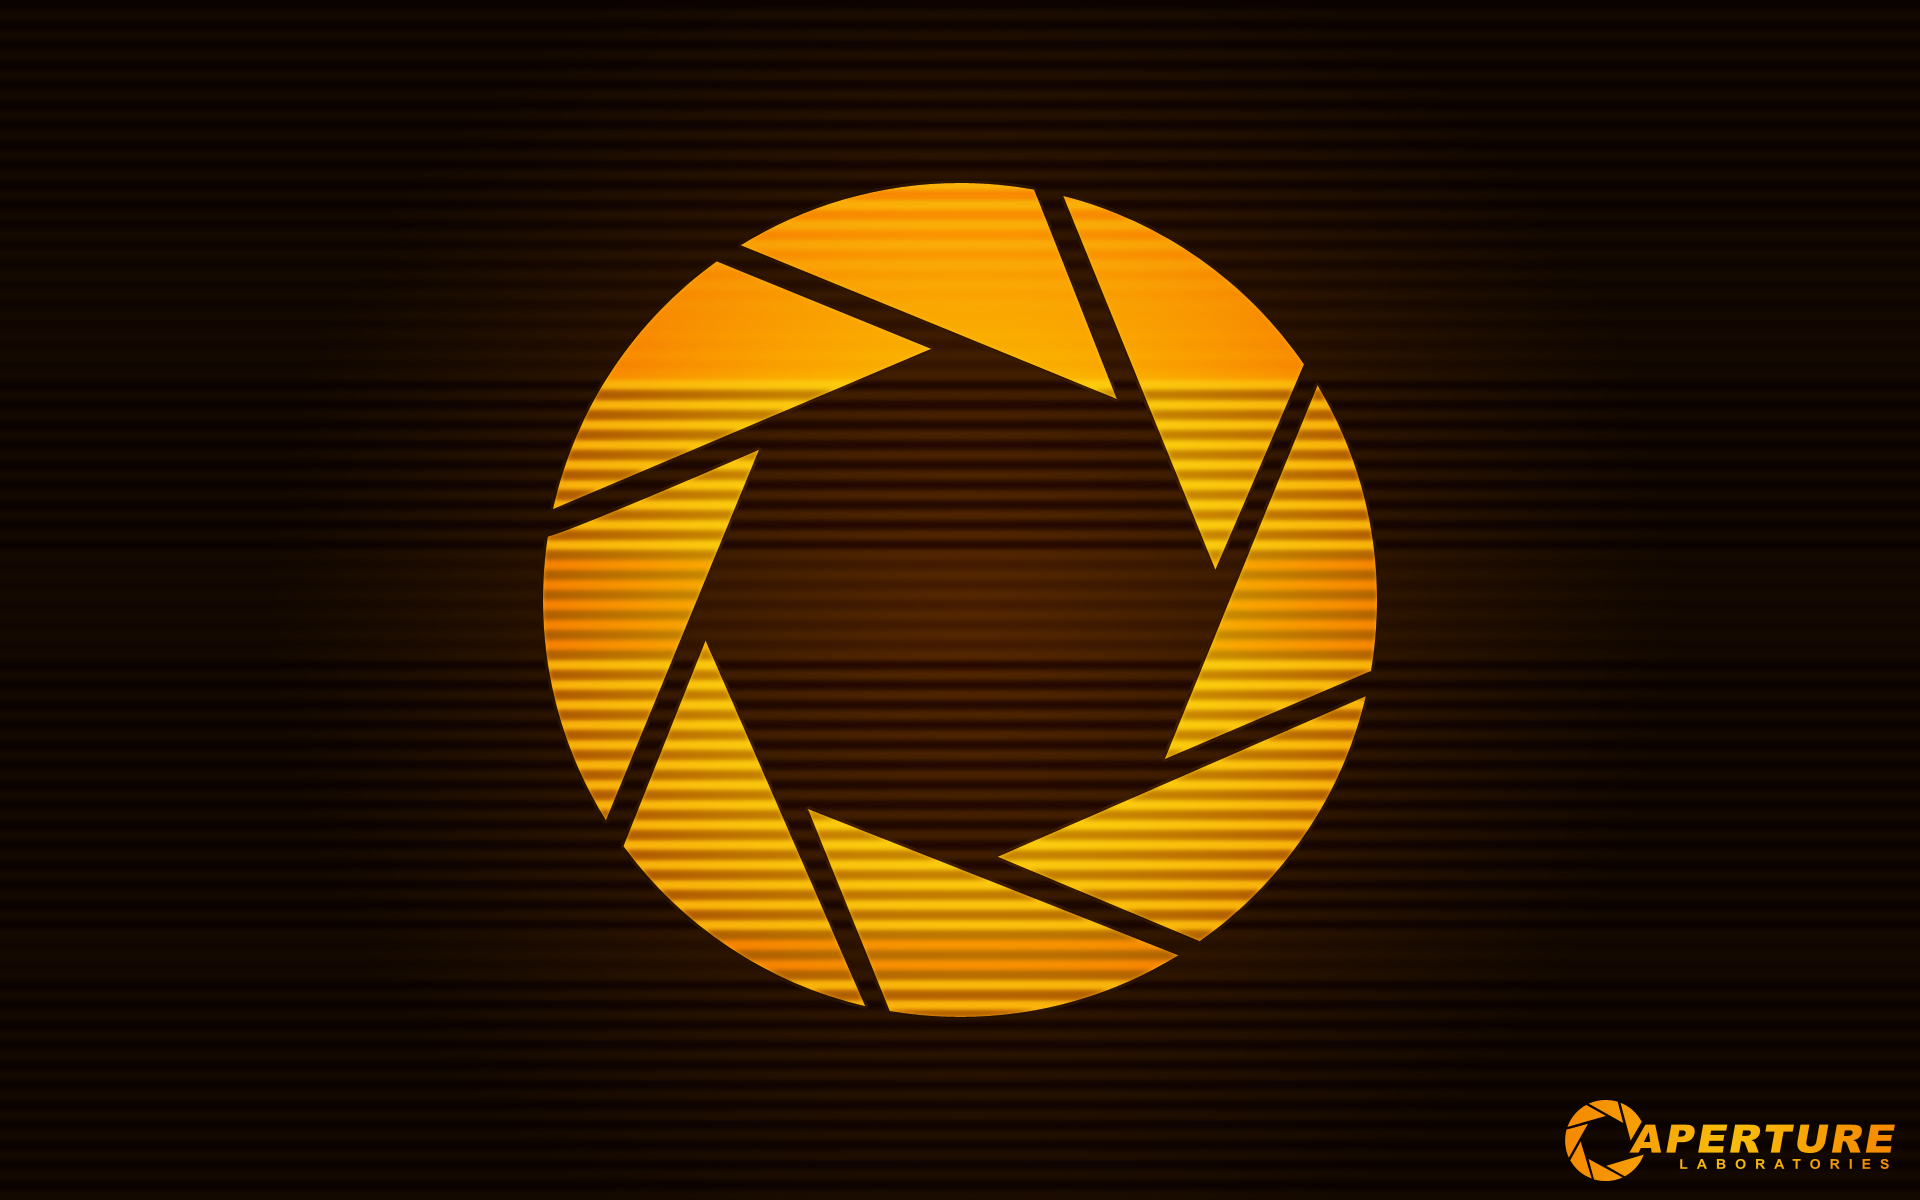 Aperture Science Gif wallpaper - 353856